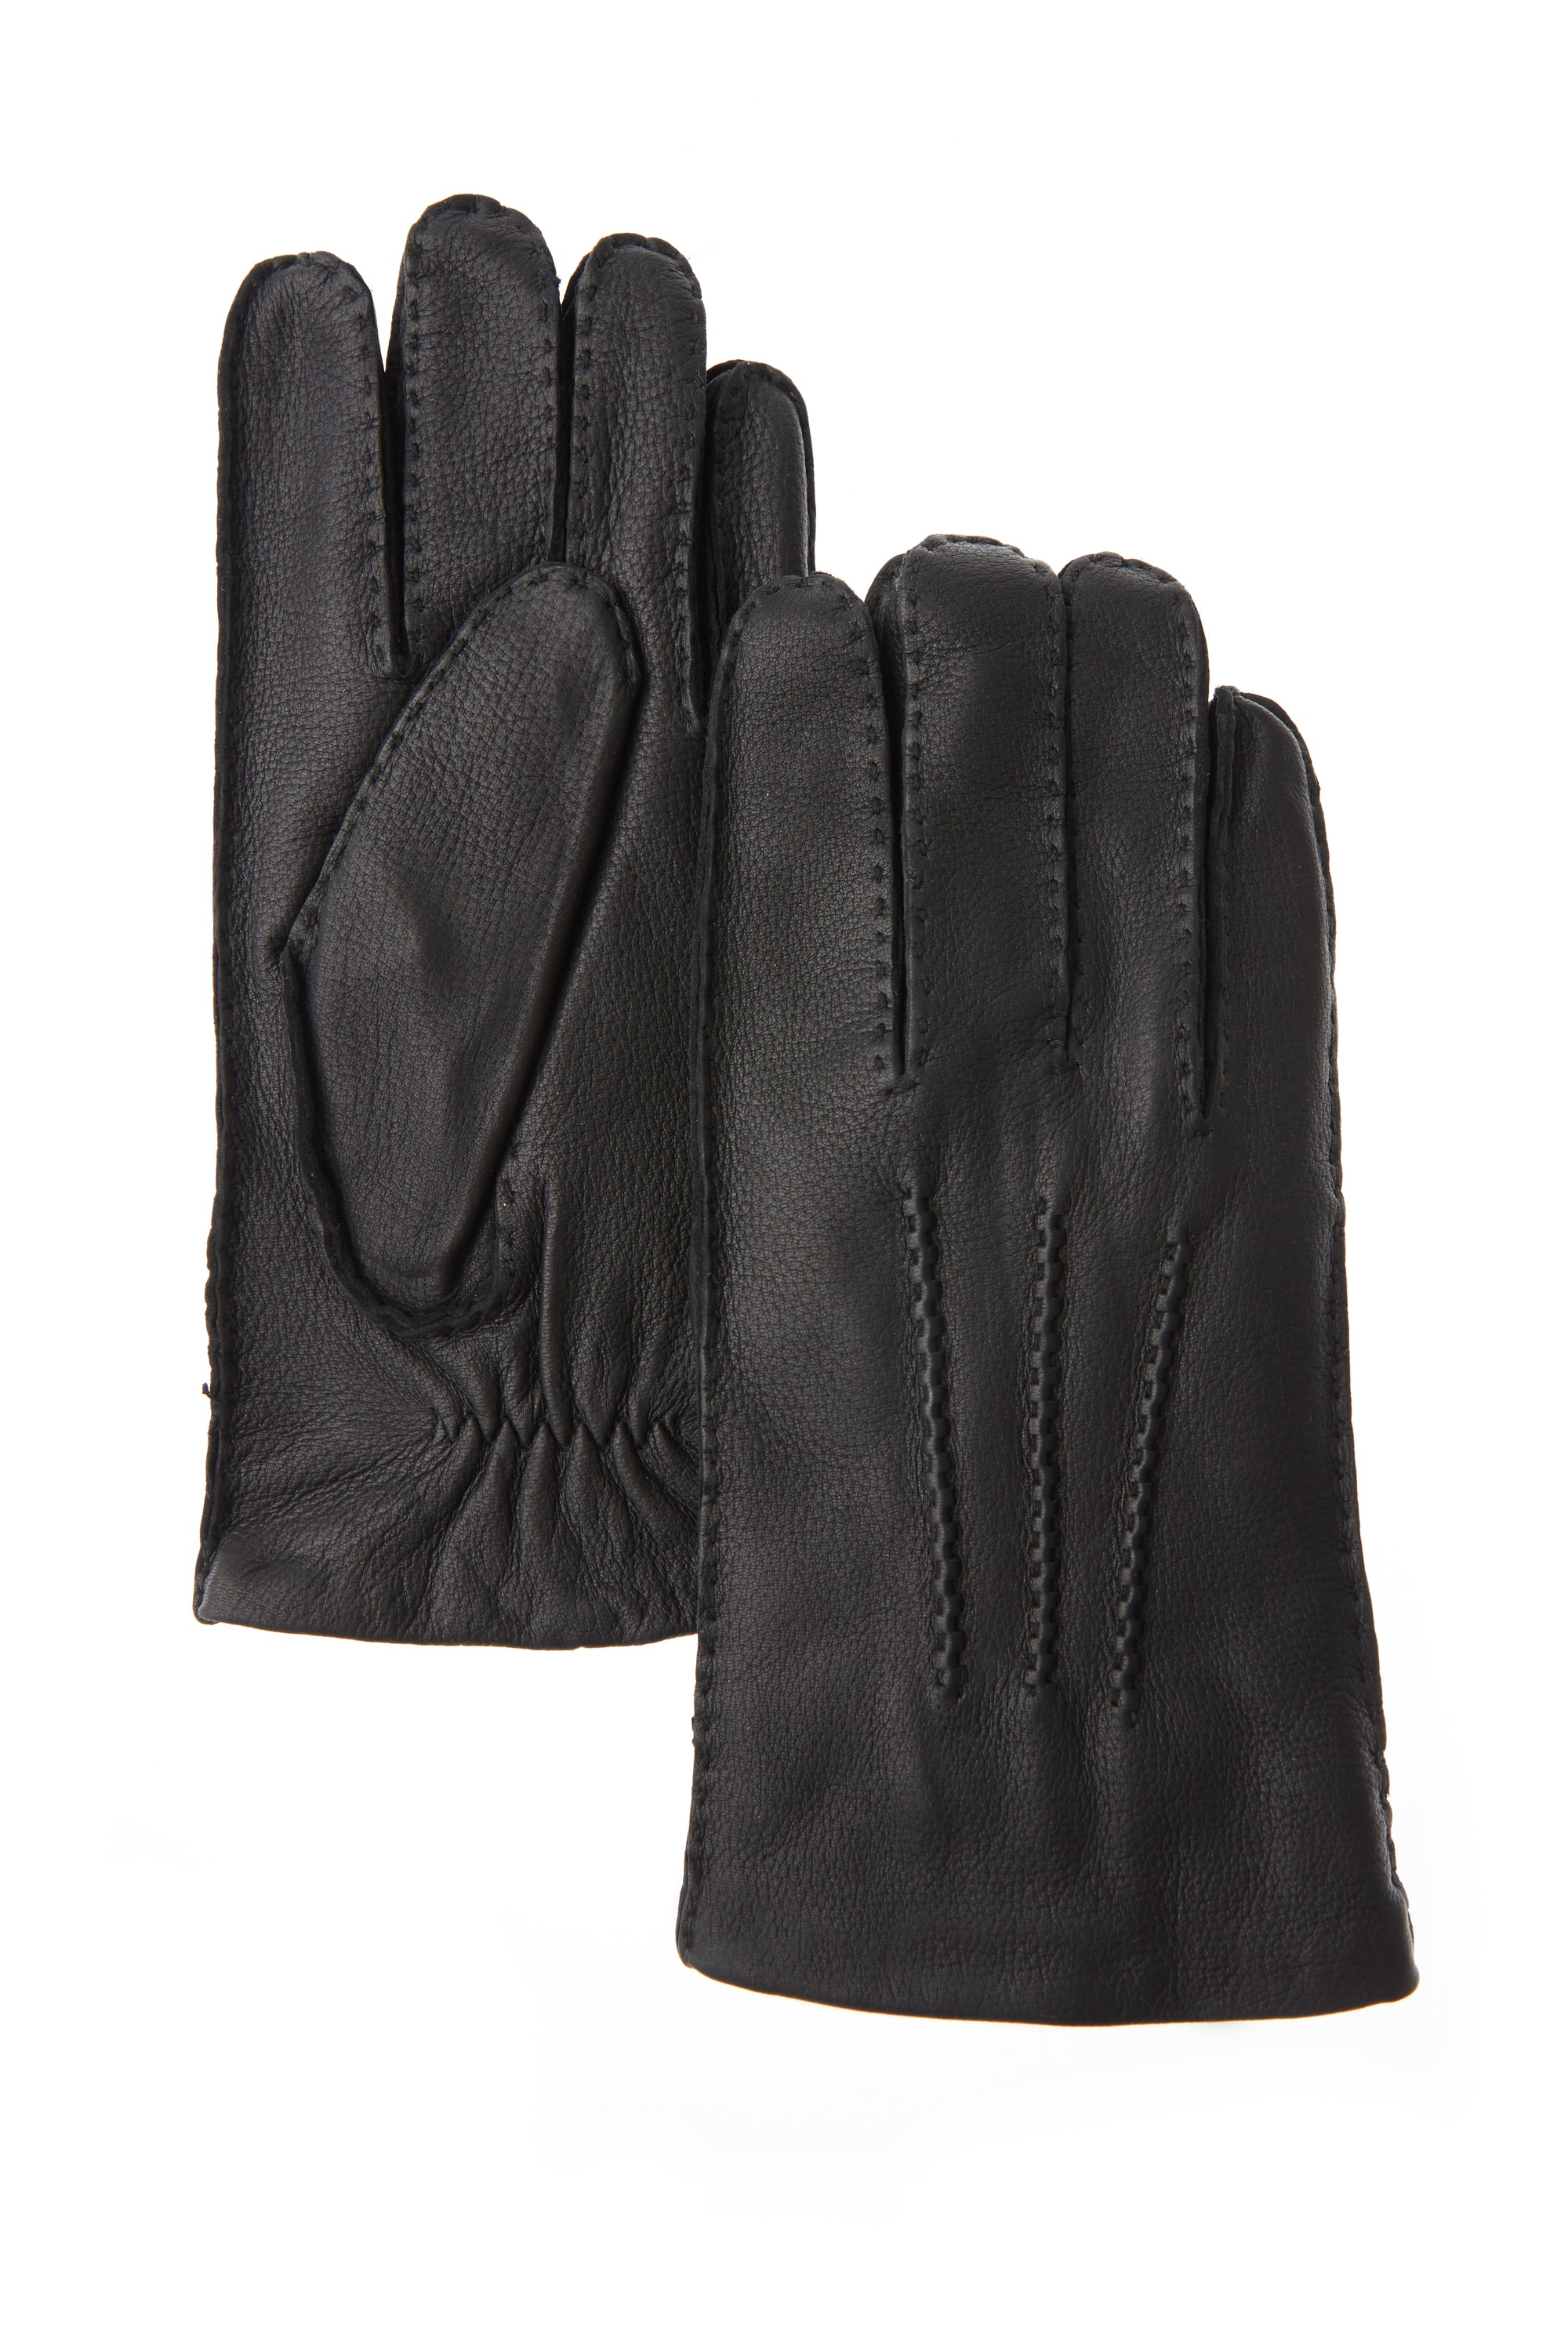 Brume - Men's Caribou Deerskin Glove - BLACK